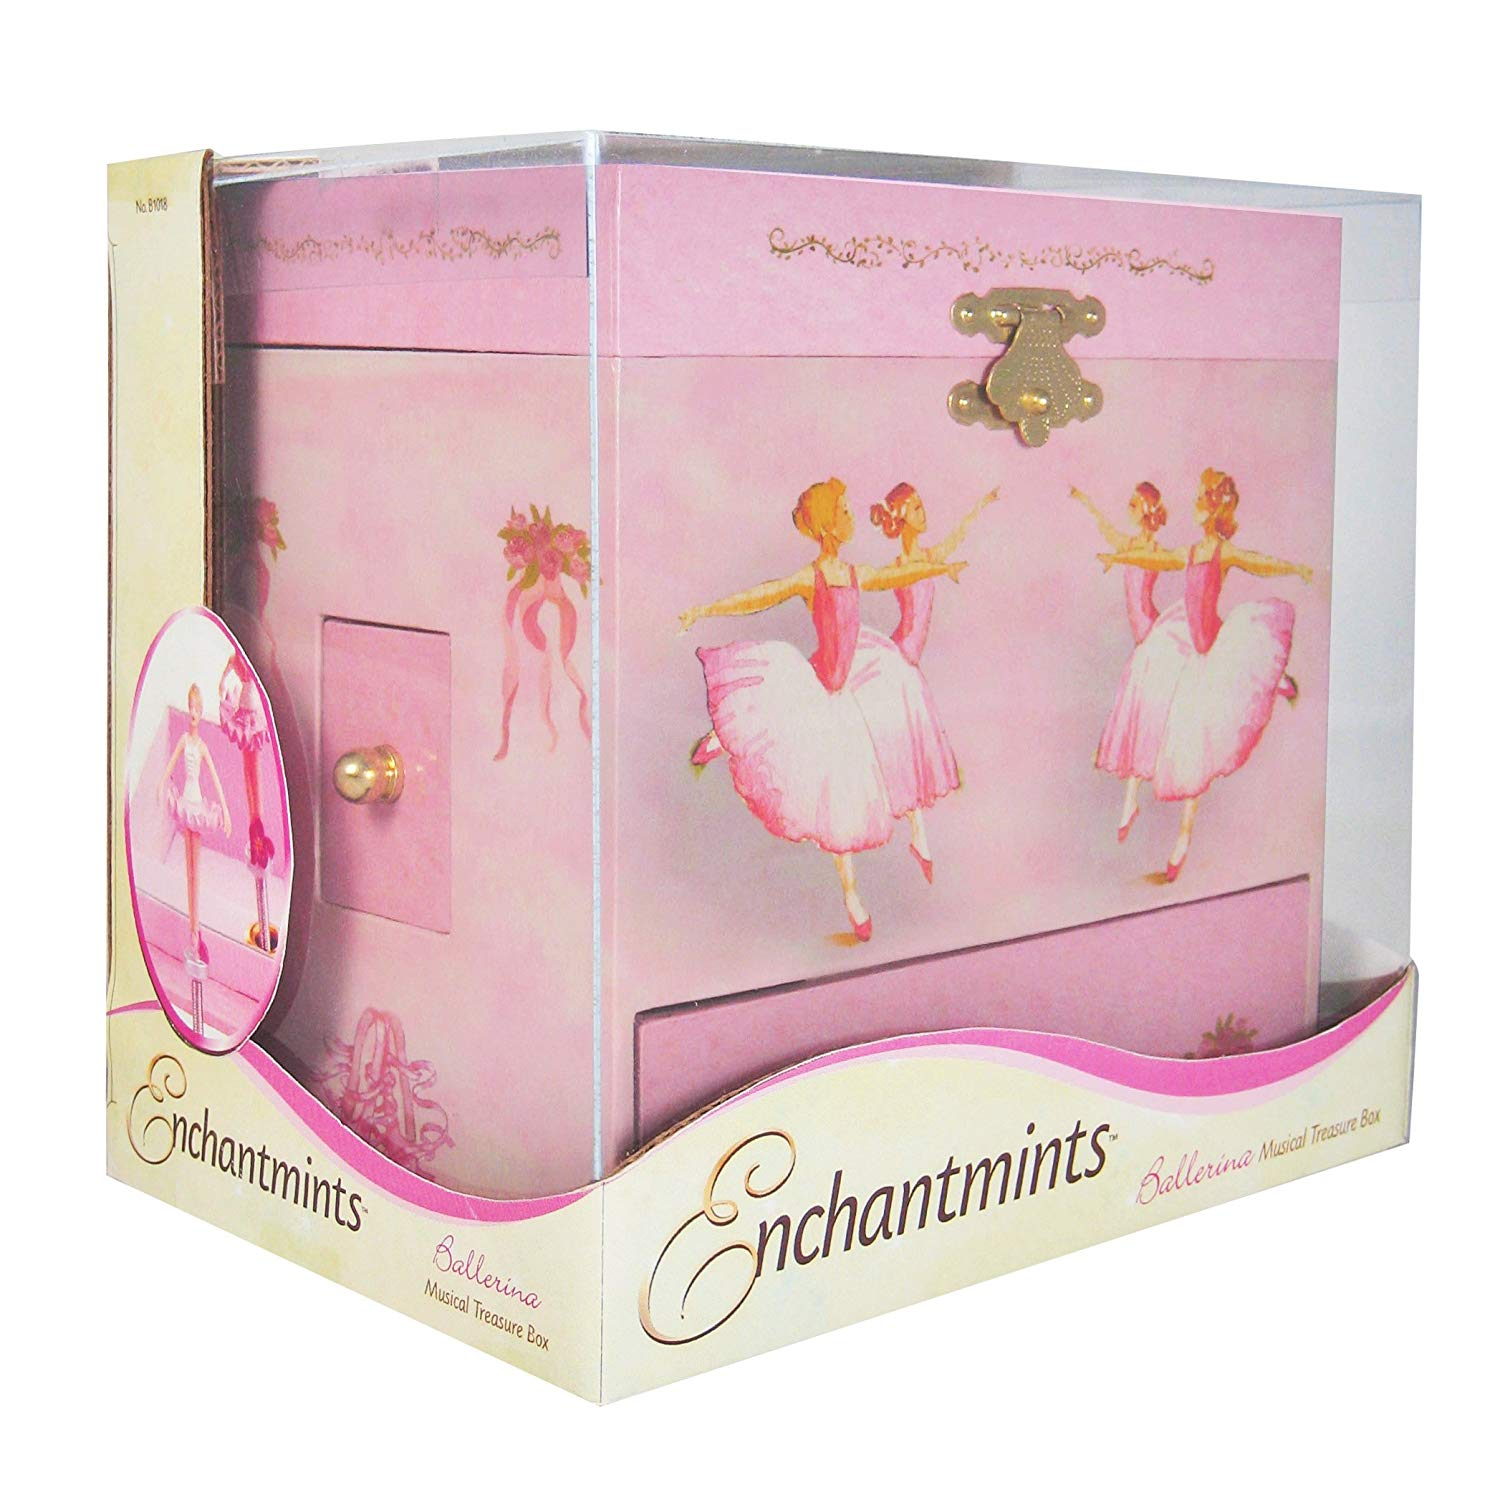 Enchantmints Ballerina Musical Jewelry Box